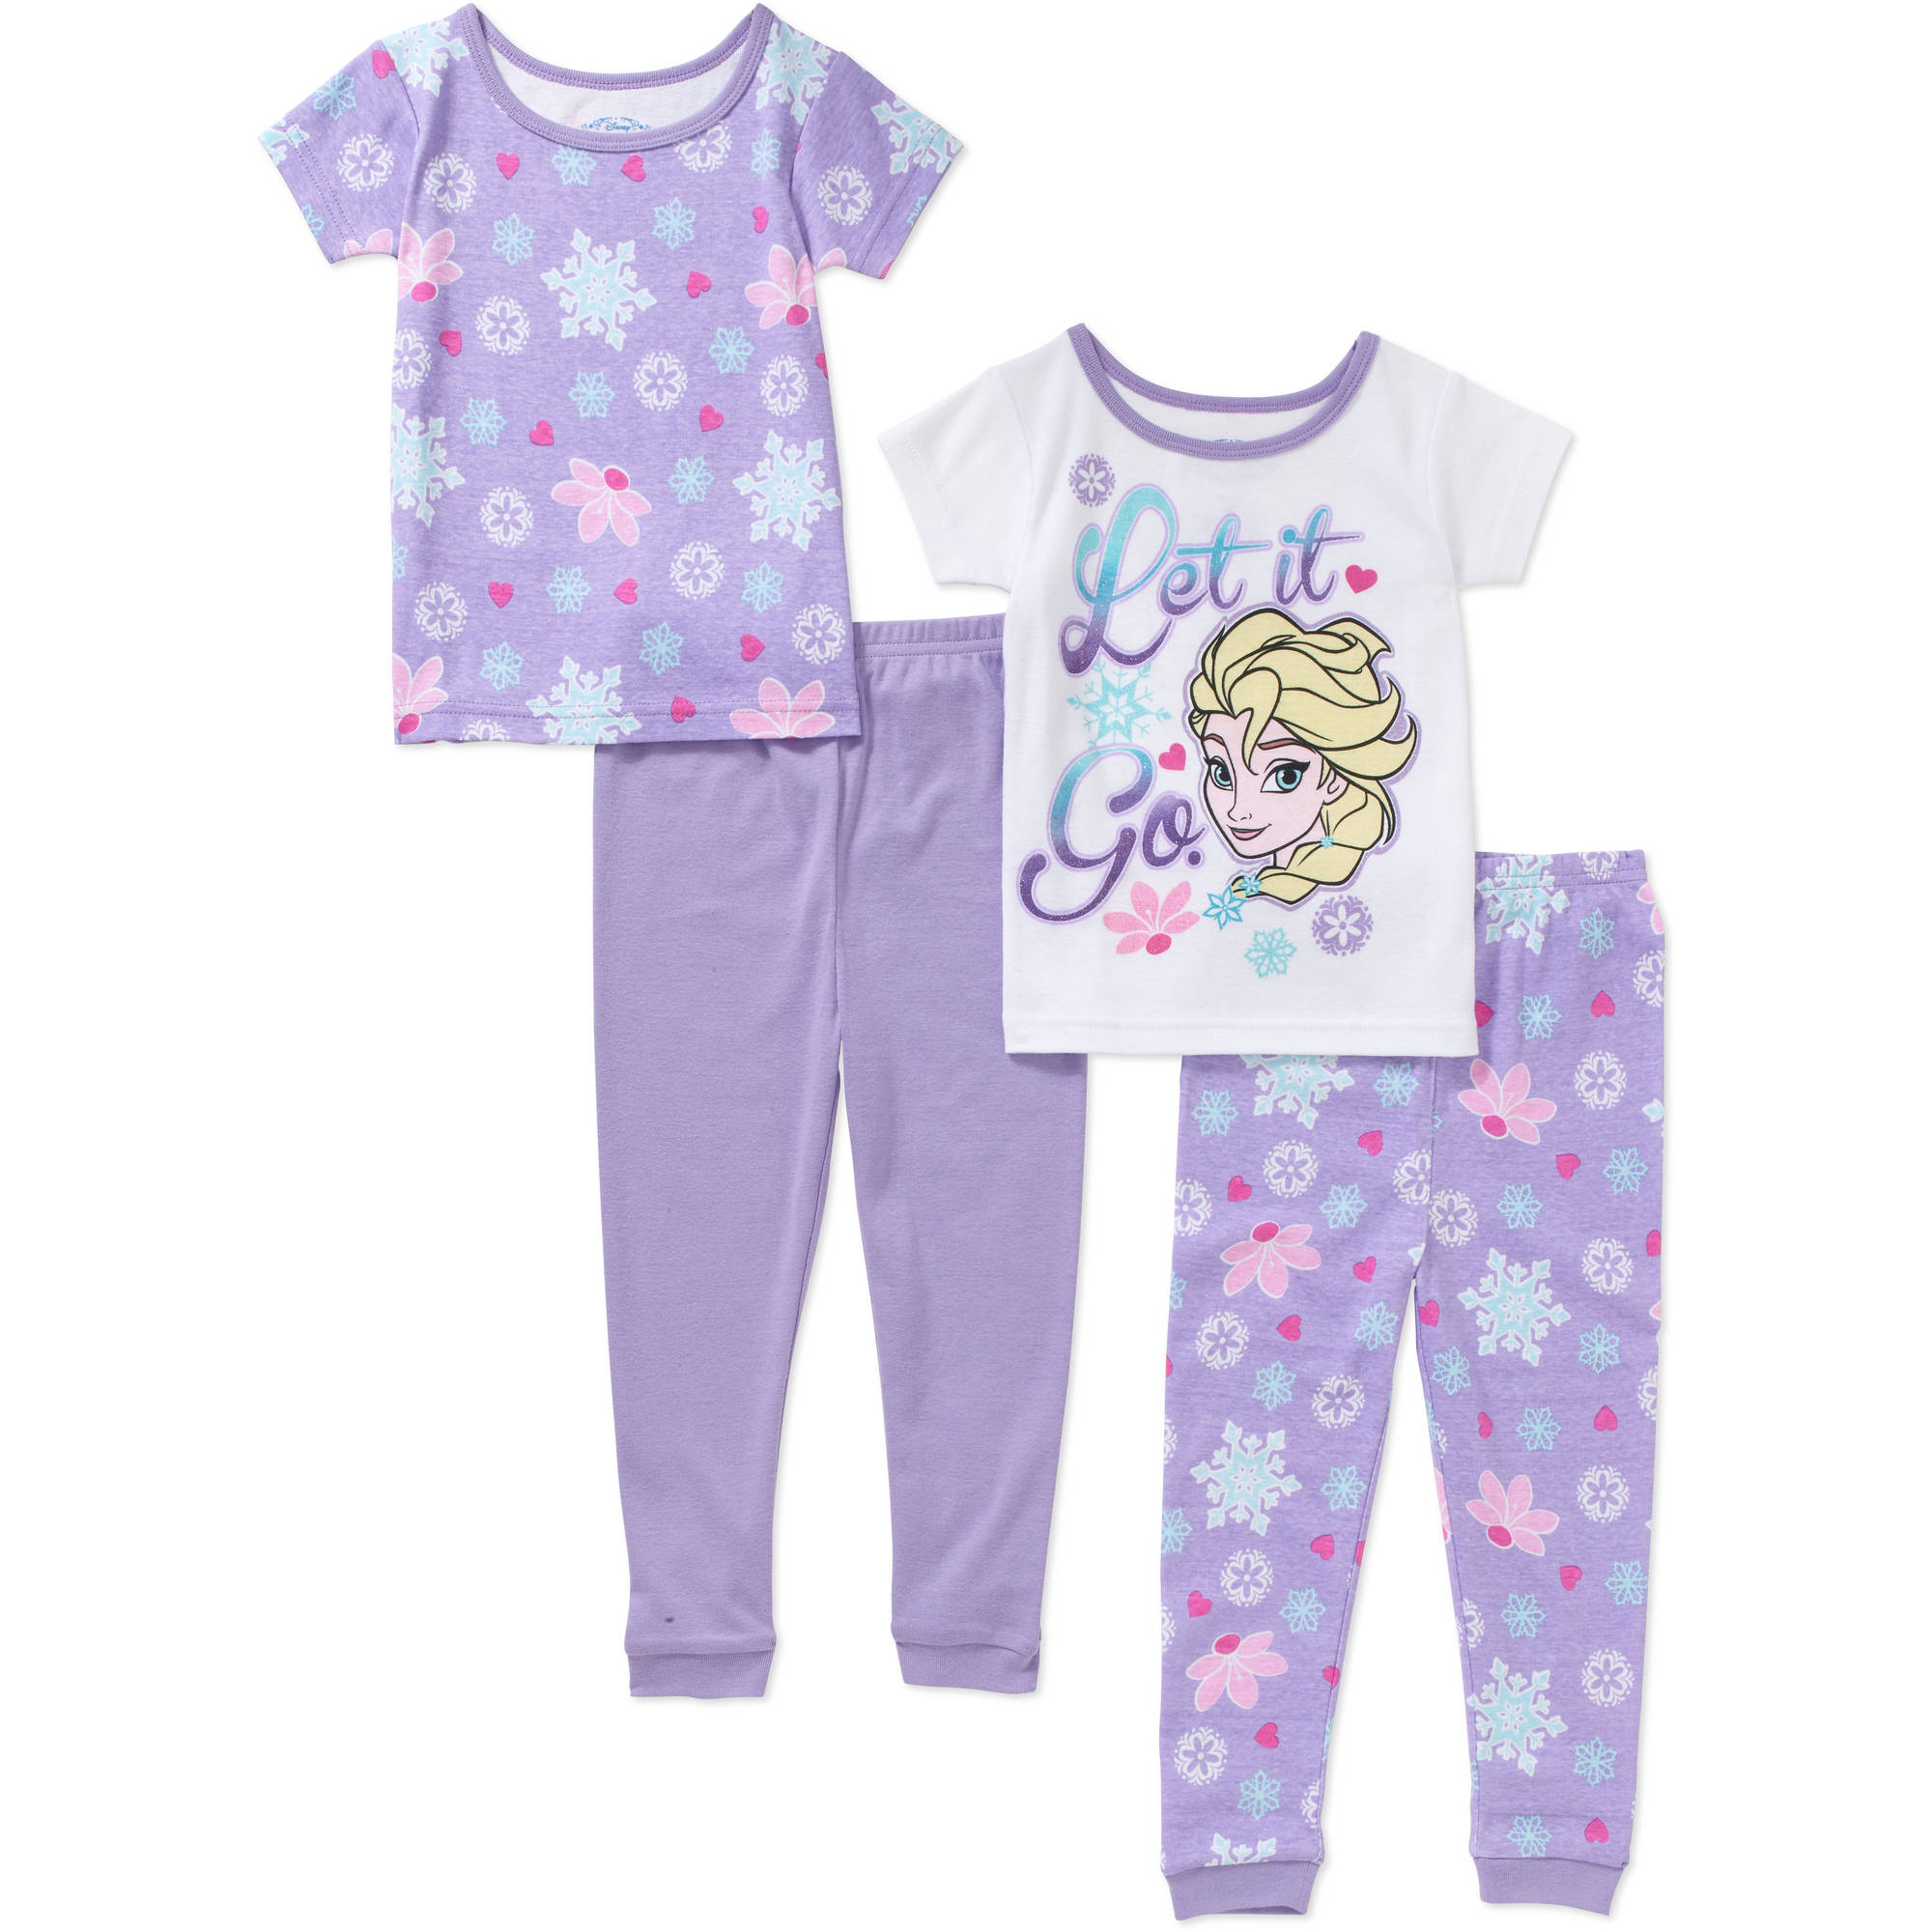 Disney Frozen Toddler Girl Cotton Tight Fit Short Sleeve Pajama Set, 4-Pieces